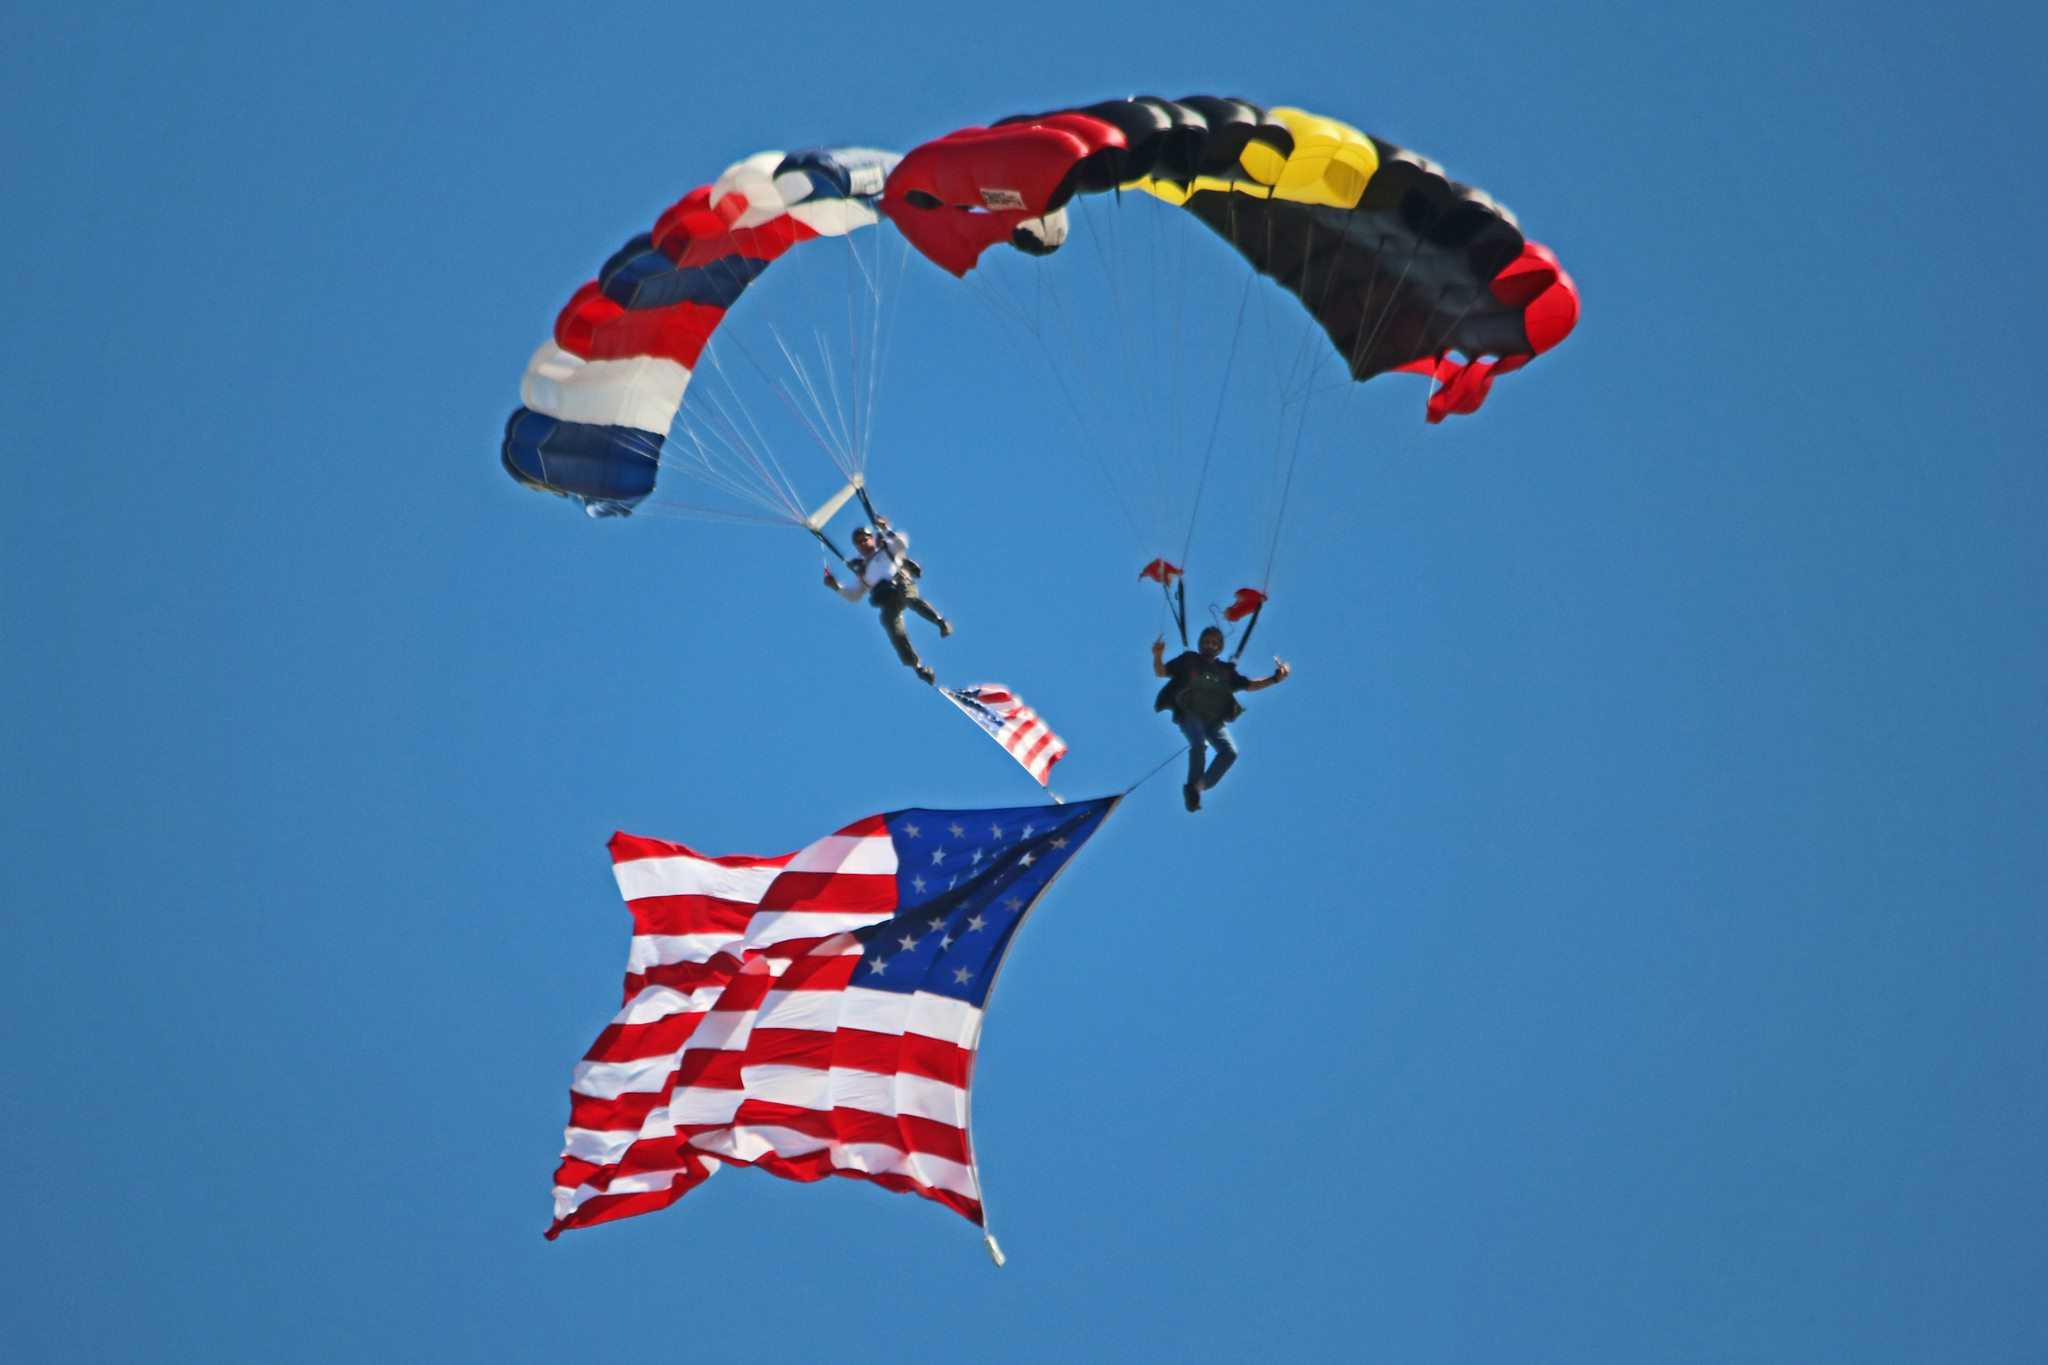 Stunt skydivers in action